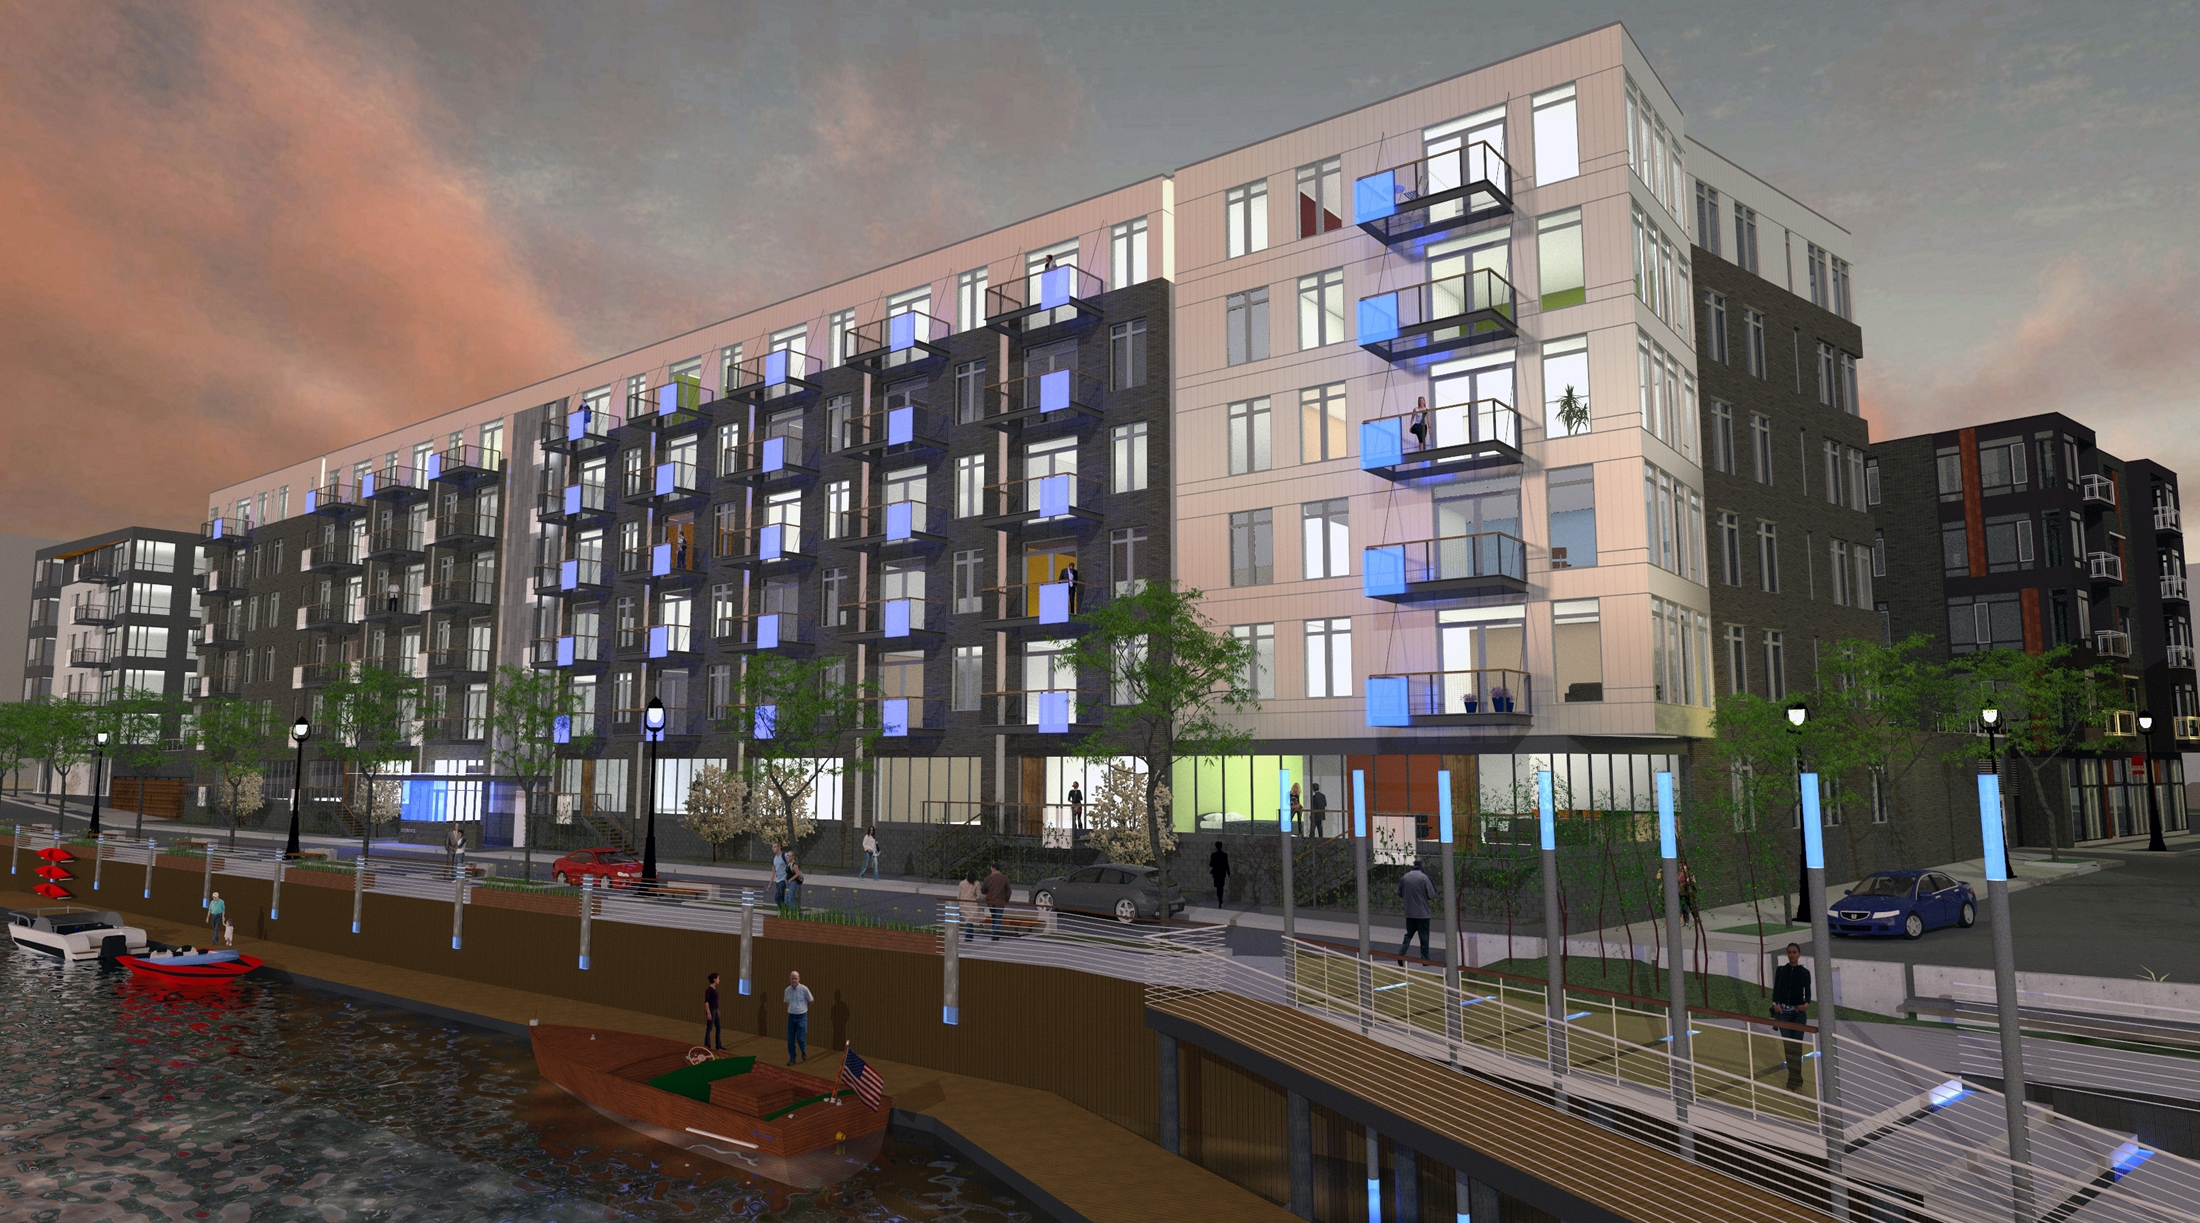 Mandel Group Receives $24 million of WHEDA financing for The North End Phase II (Renderings)